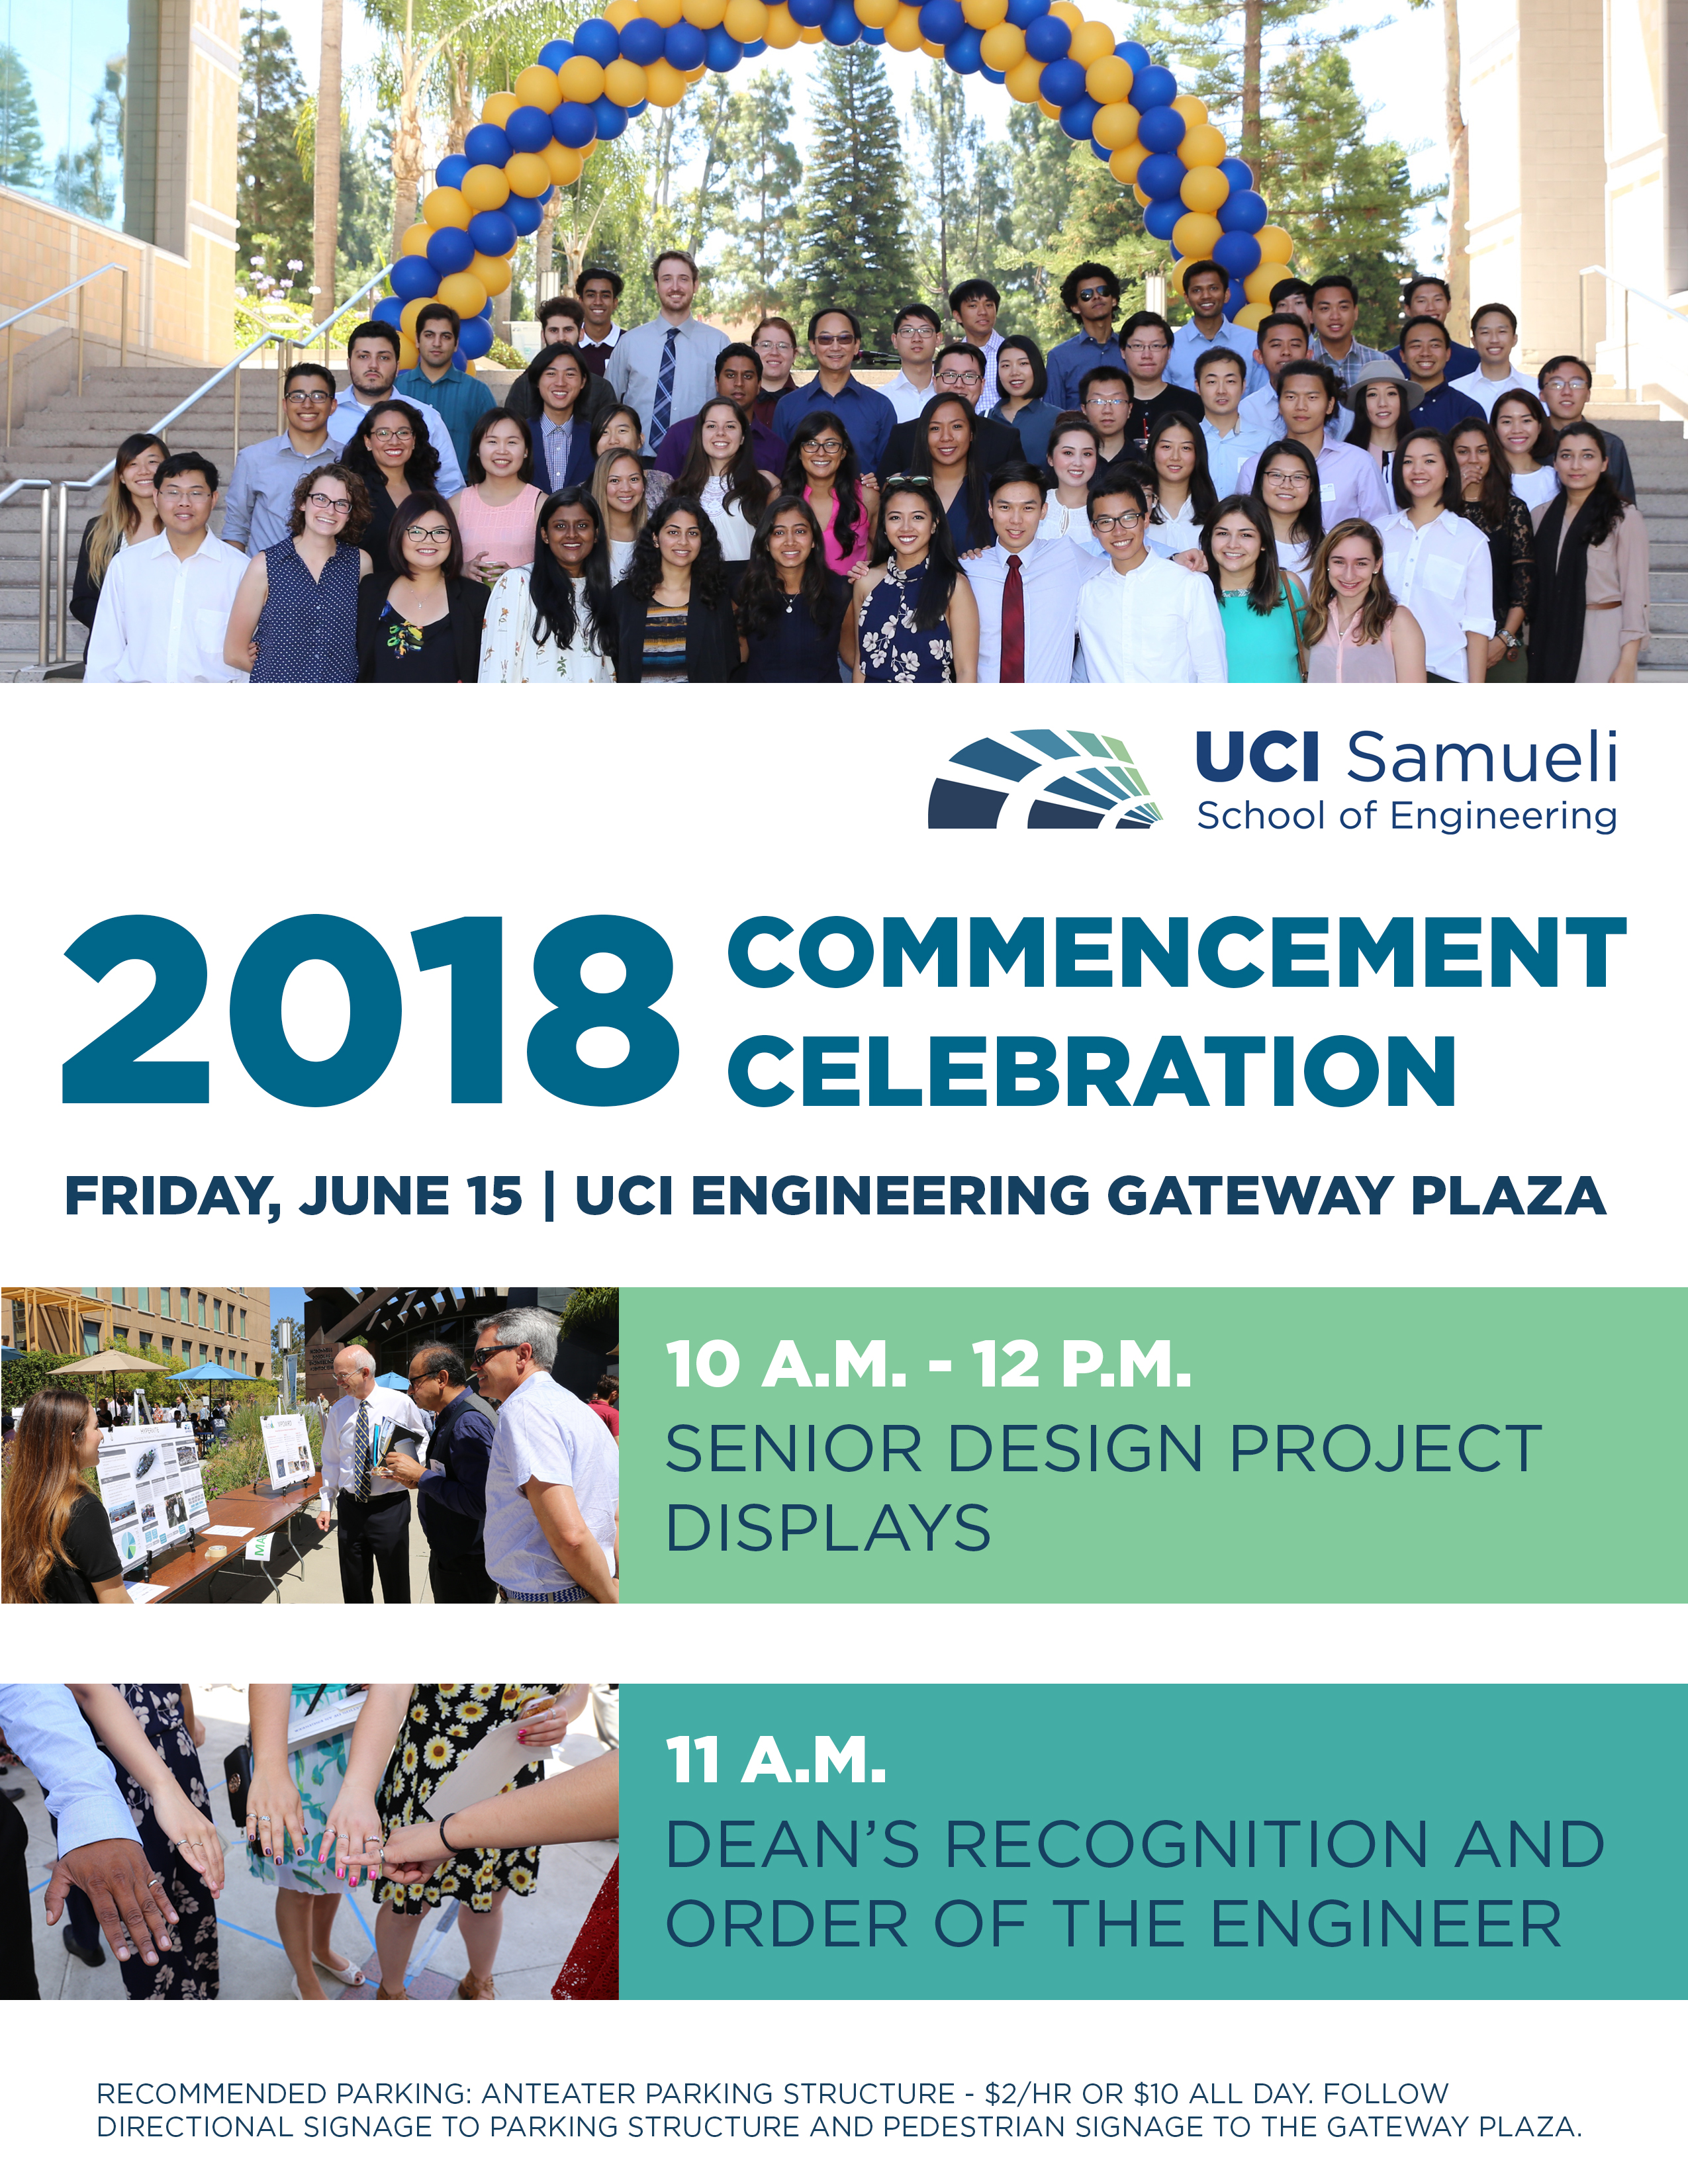 2018 Commencement Celebration